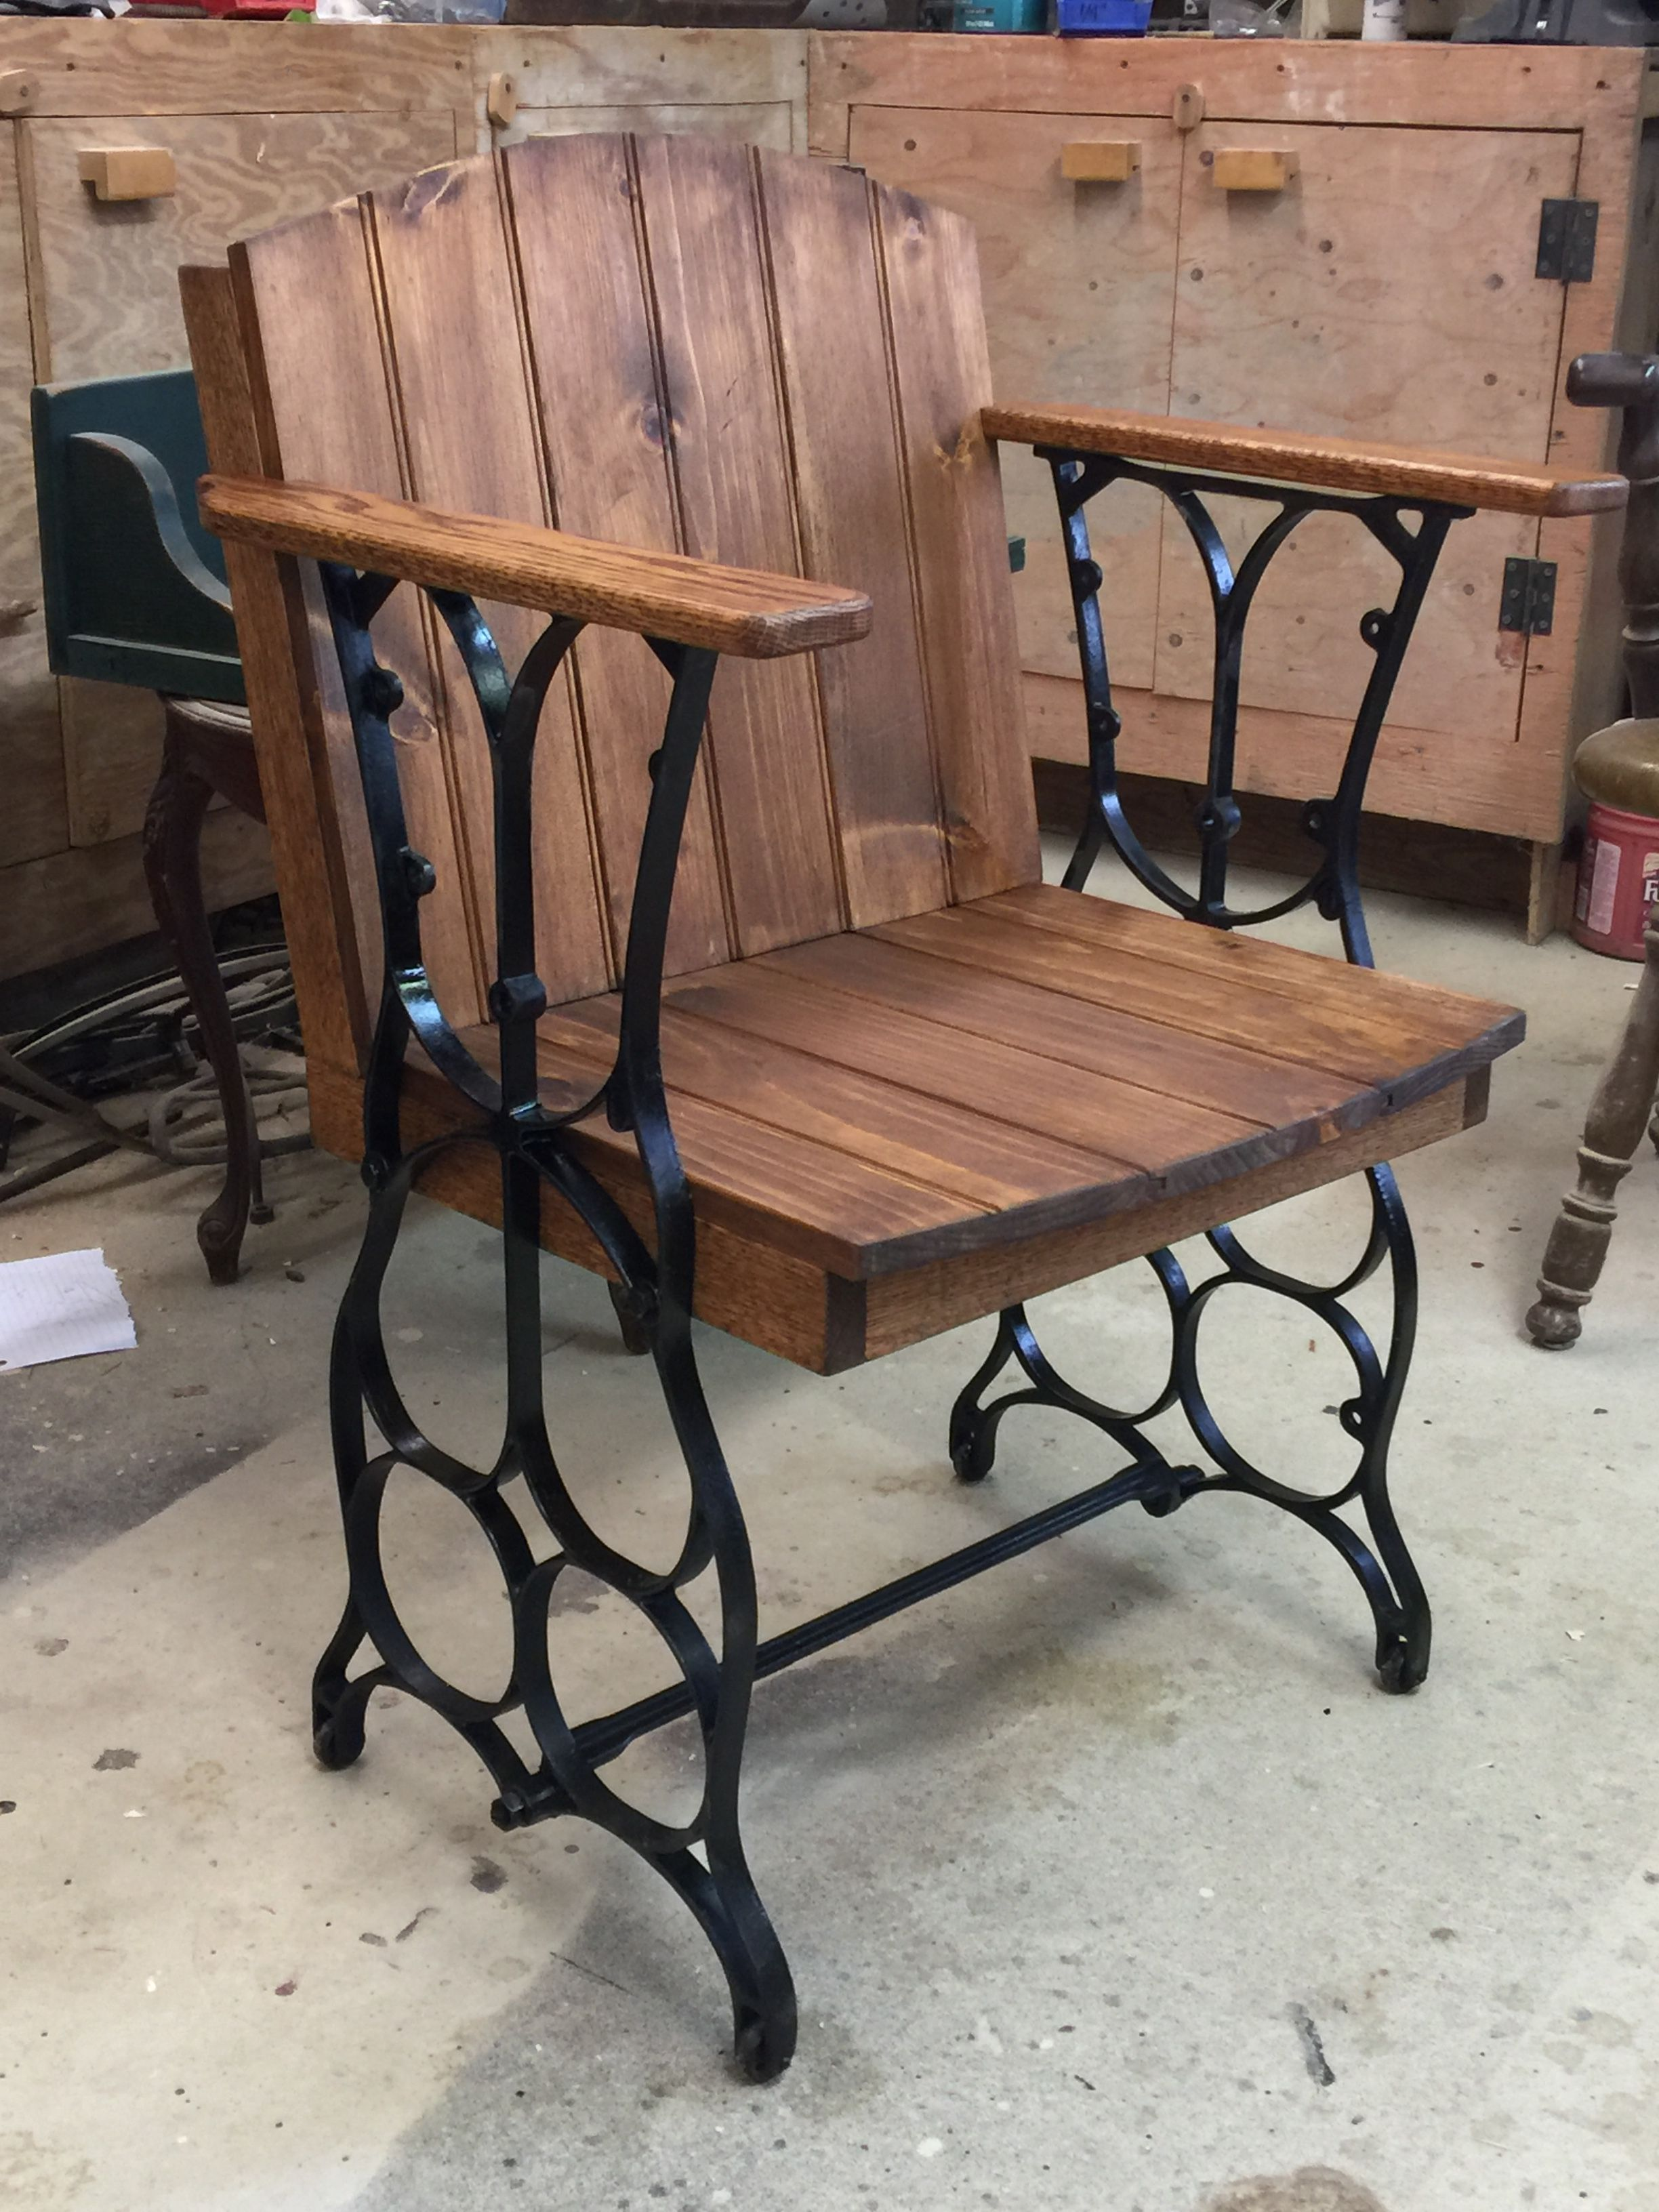 Antique Sewing Chair Revolving Exchange I Made This From An Old Set Of Treadle